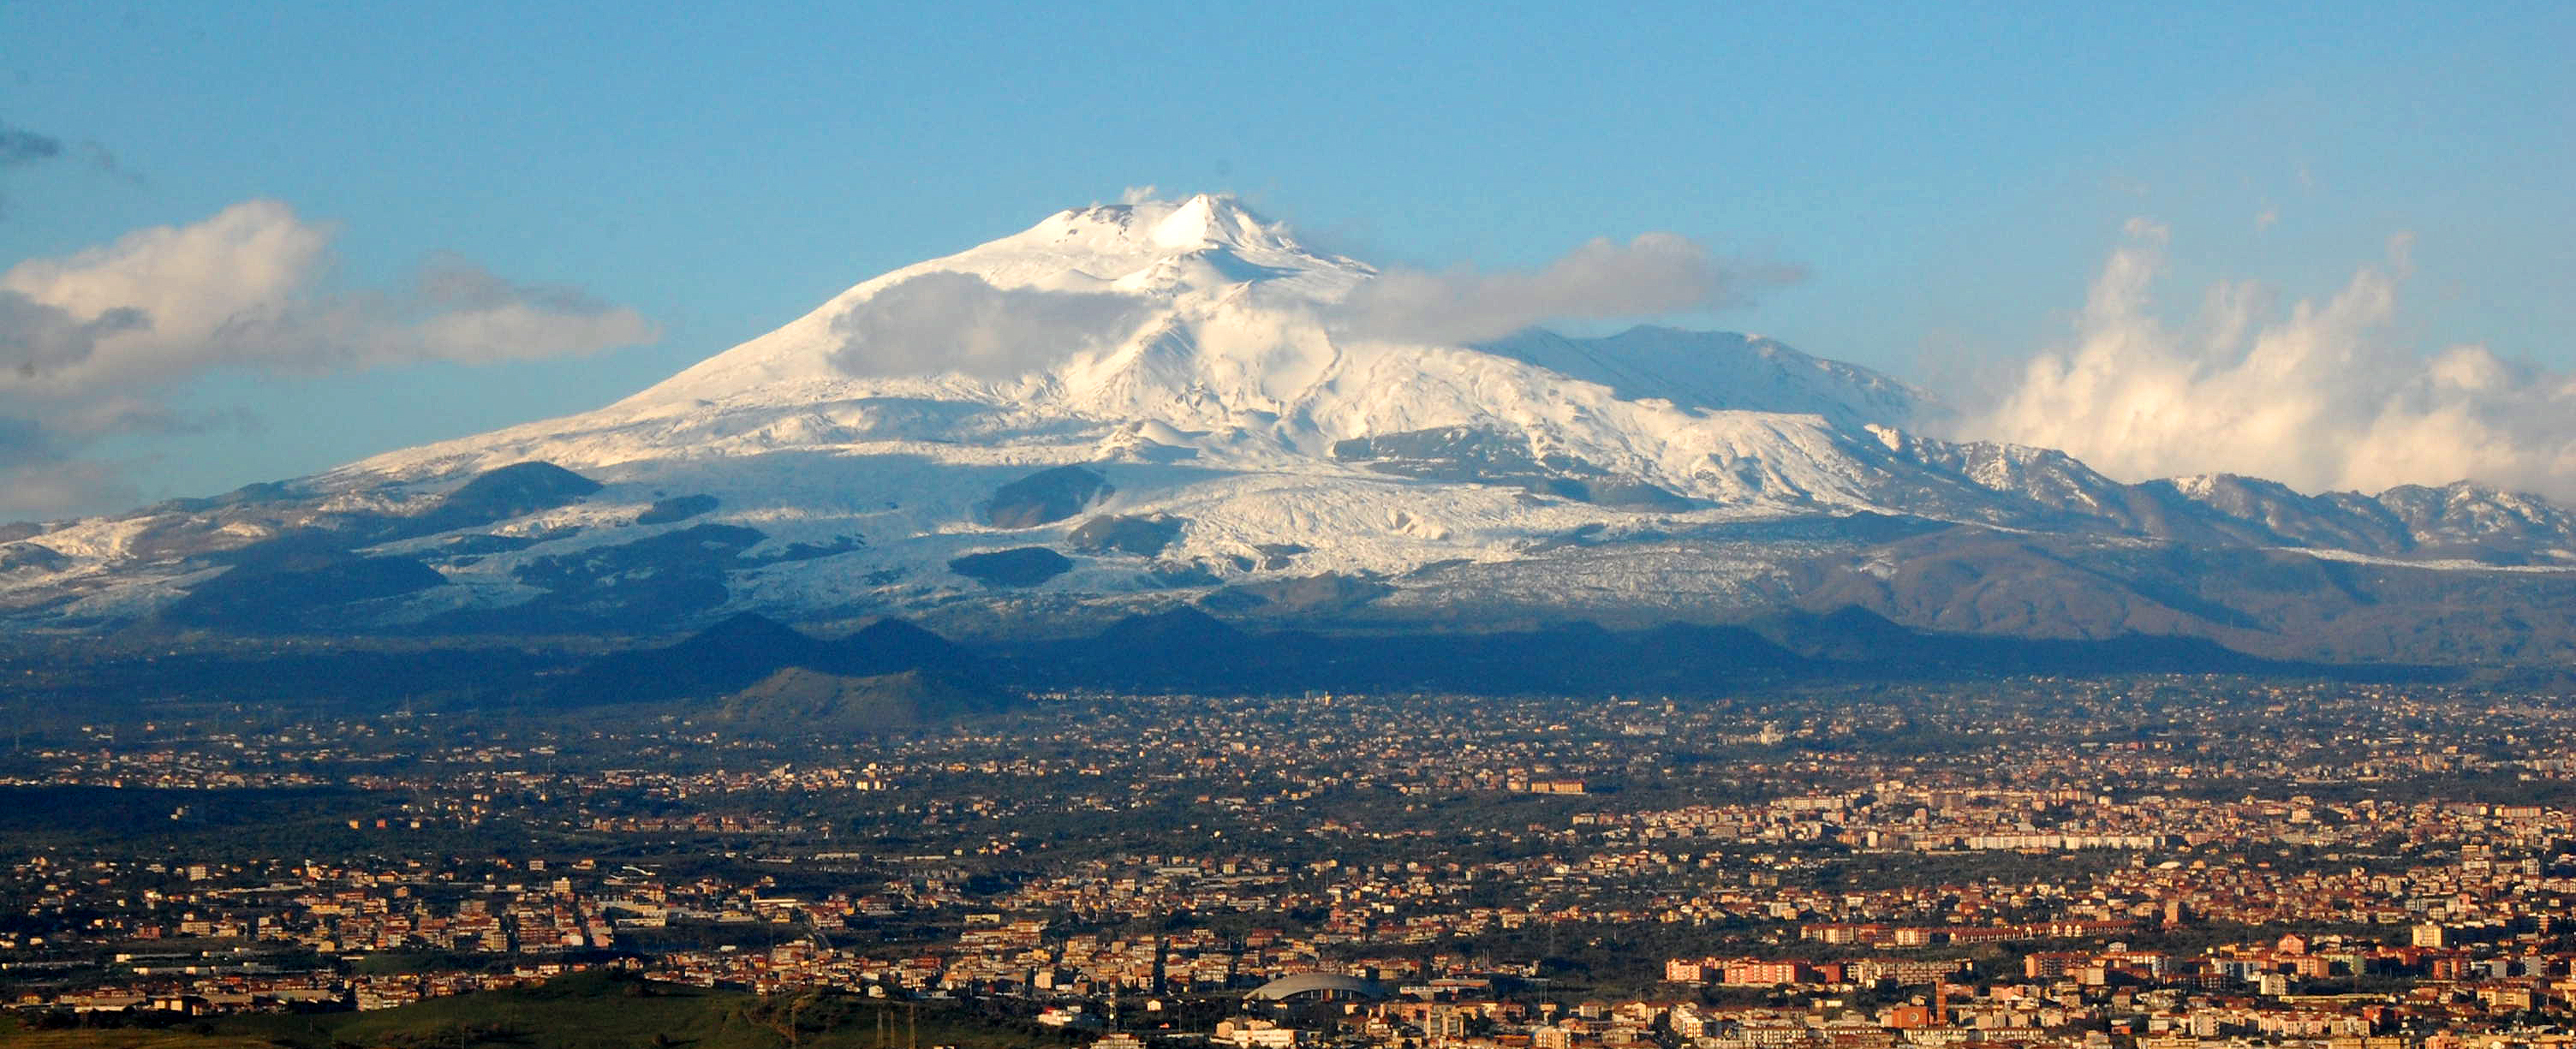 Mount Etna Facts